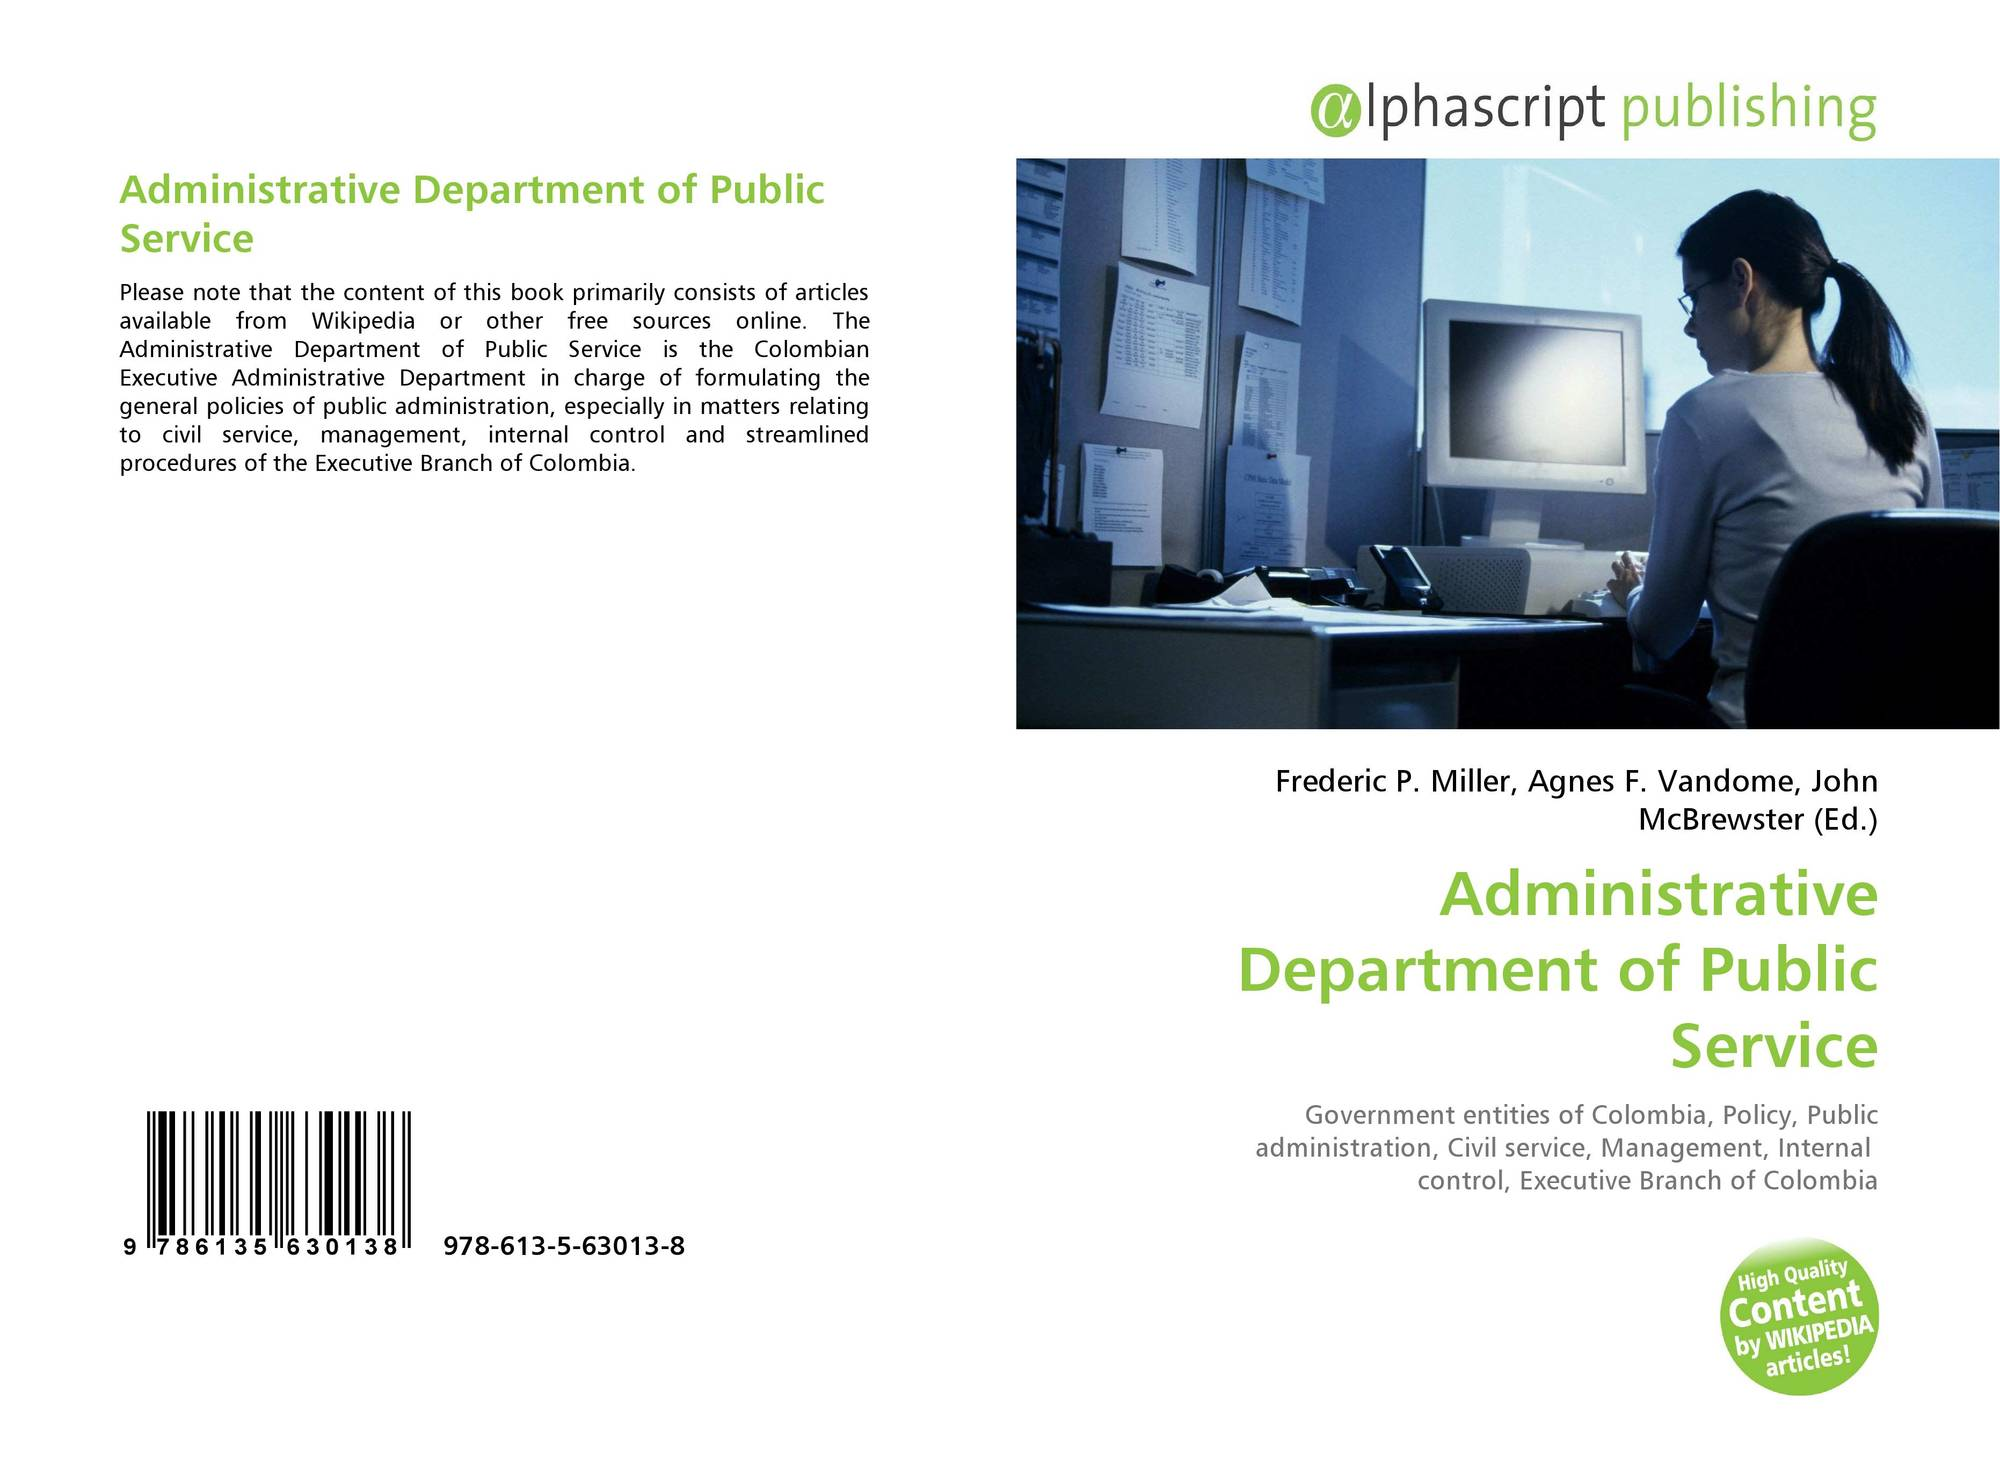 Bookcover of Administrative Department of Public Service. 9786135630138